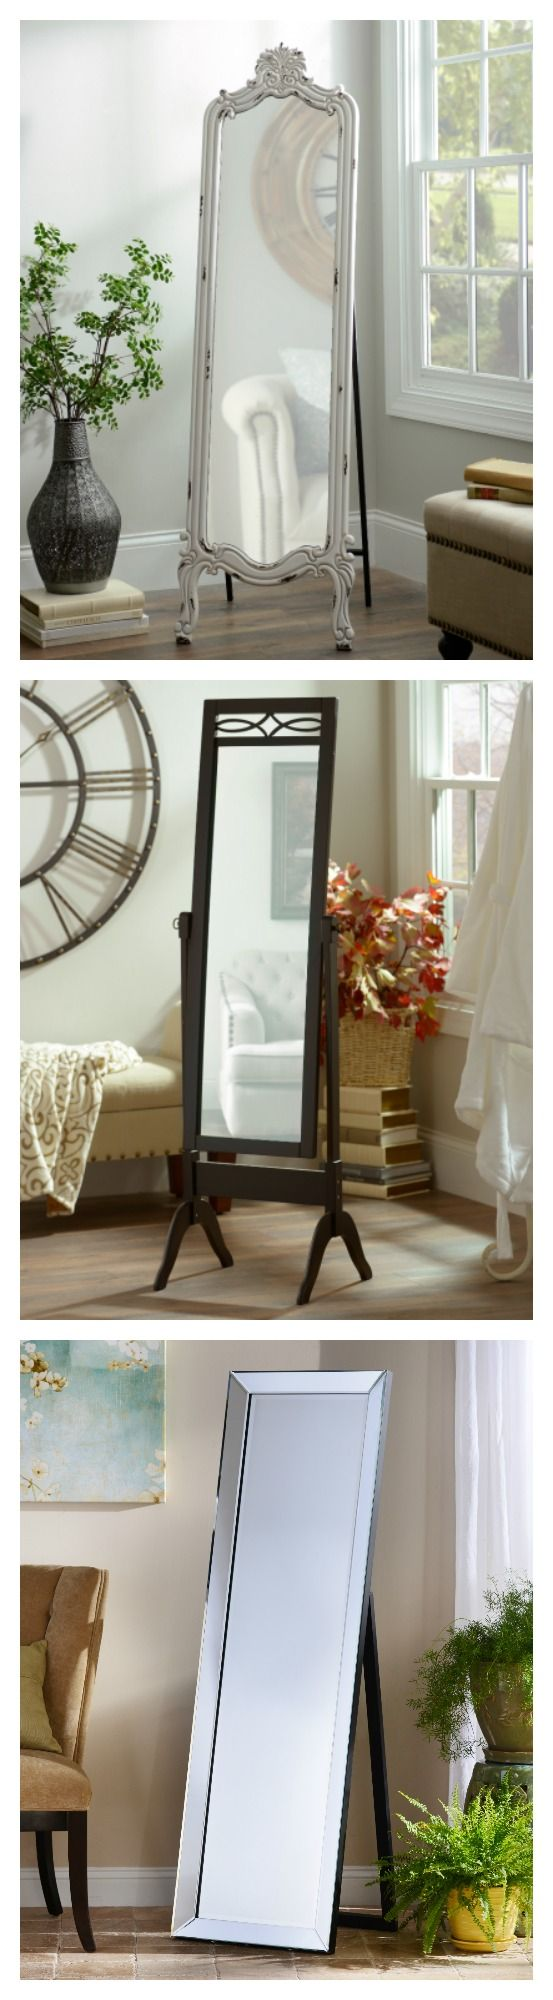 Let us floor you with our selection of full length and floor mirrors! Find the perfect mirror for your bathroom or bedroom - perfect to match and accent your taste! Whether you want a framed, contemporary, or just a traditional mirror, we have a wide selection perfect for any style!